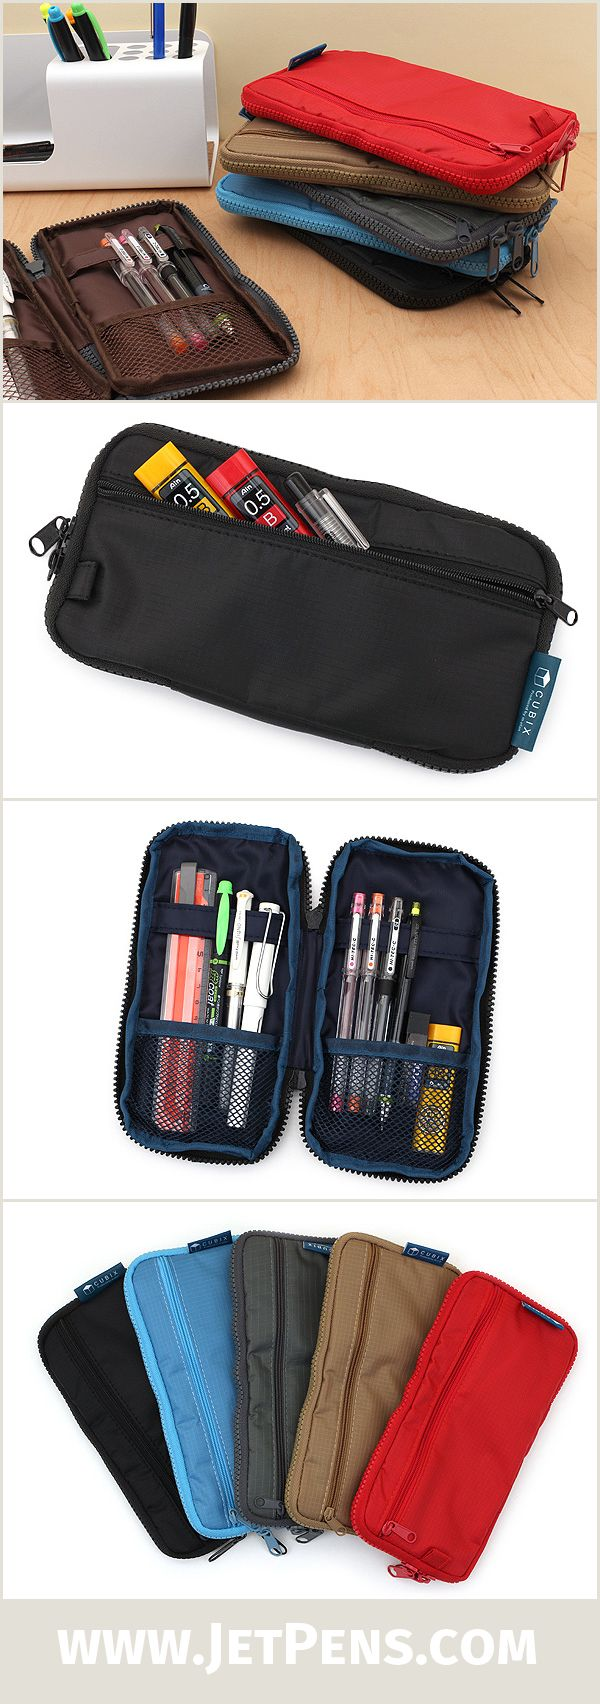 The slim Cubix Round Zip Pen Case is made of lightweight nylon with cushioned compartments for storing your pens, pencils, leads, and other stationery accessories.